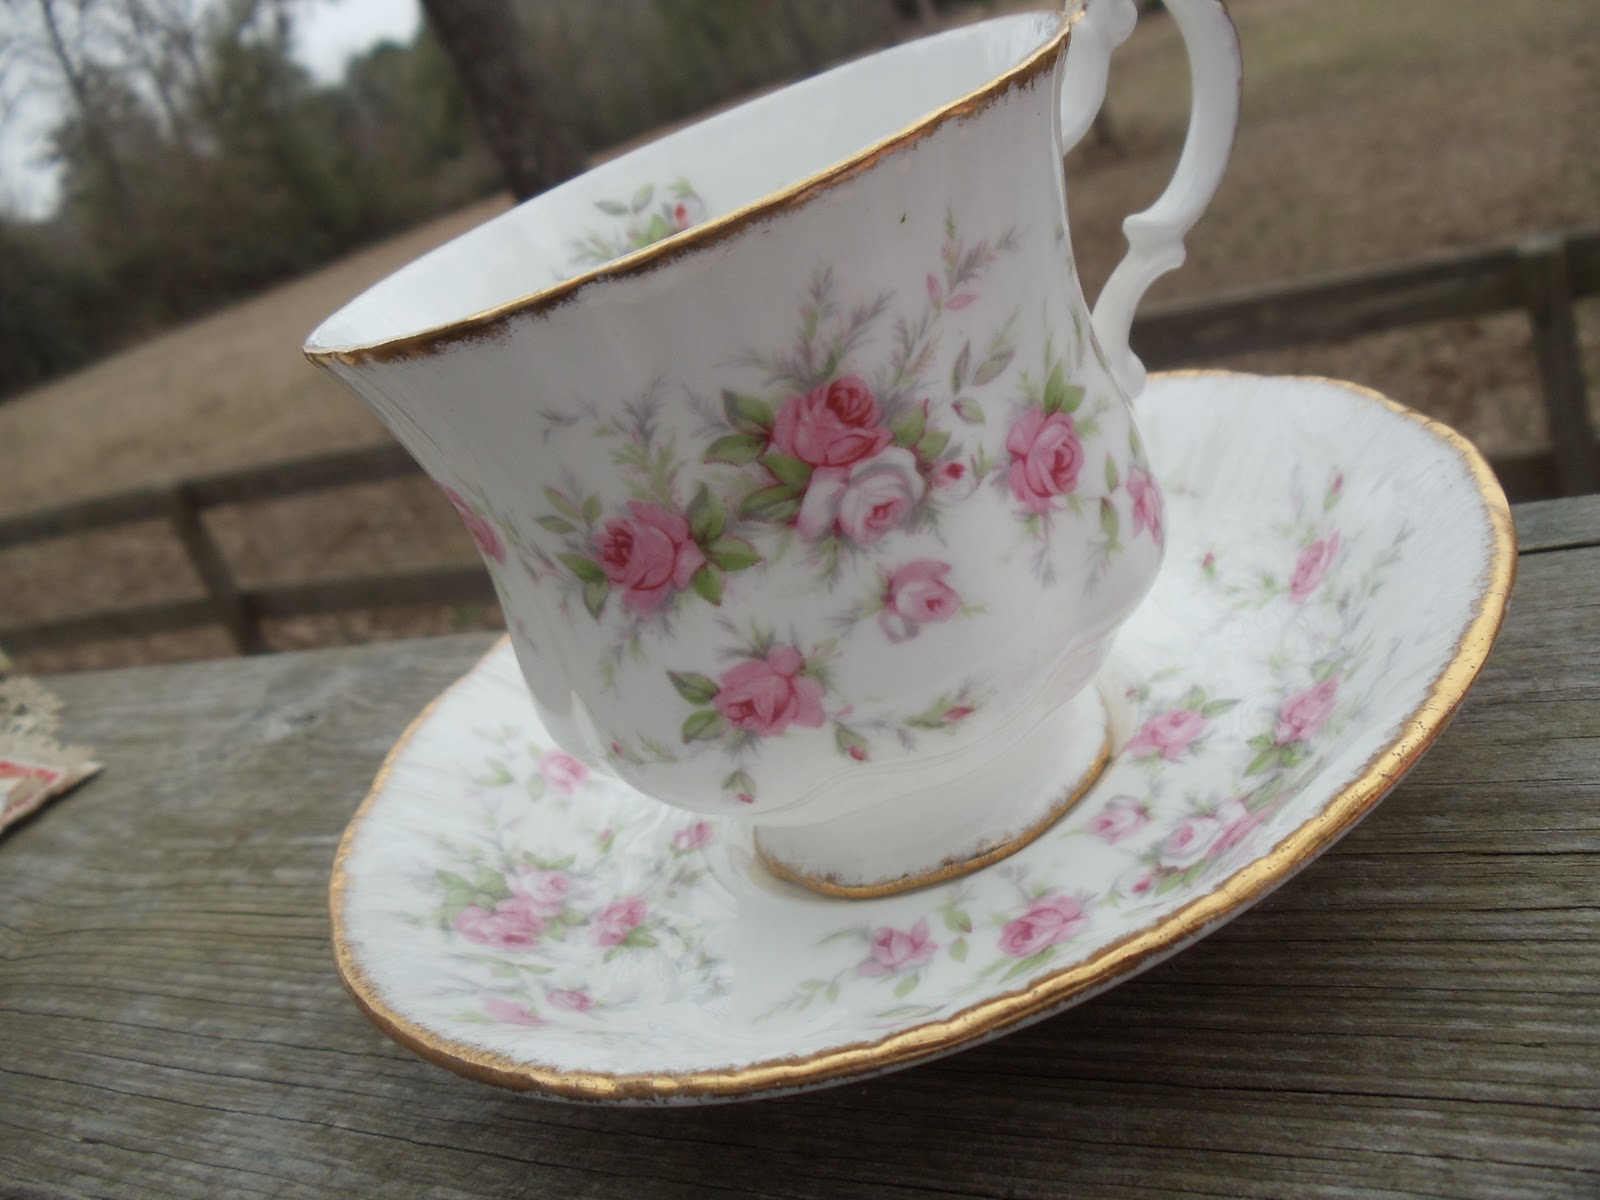 Comin' Home: Valentines and A Beautiful Tea Cup